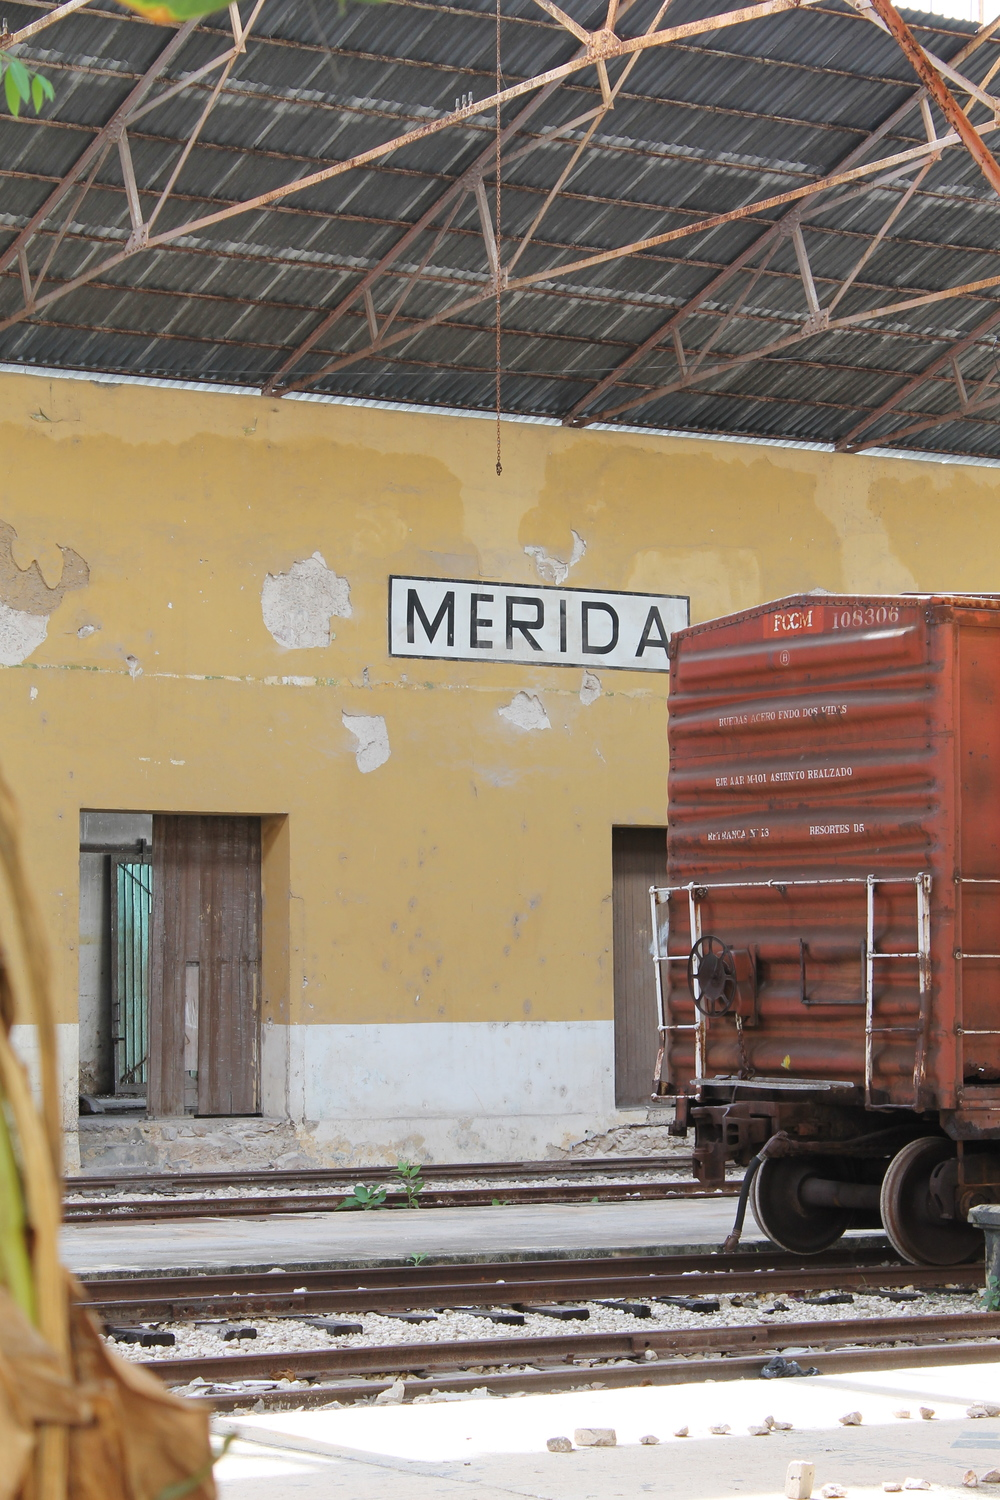 Abandoned Merida Train Station